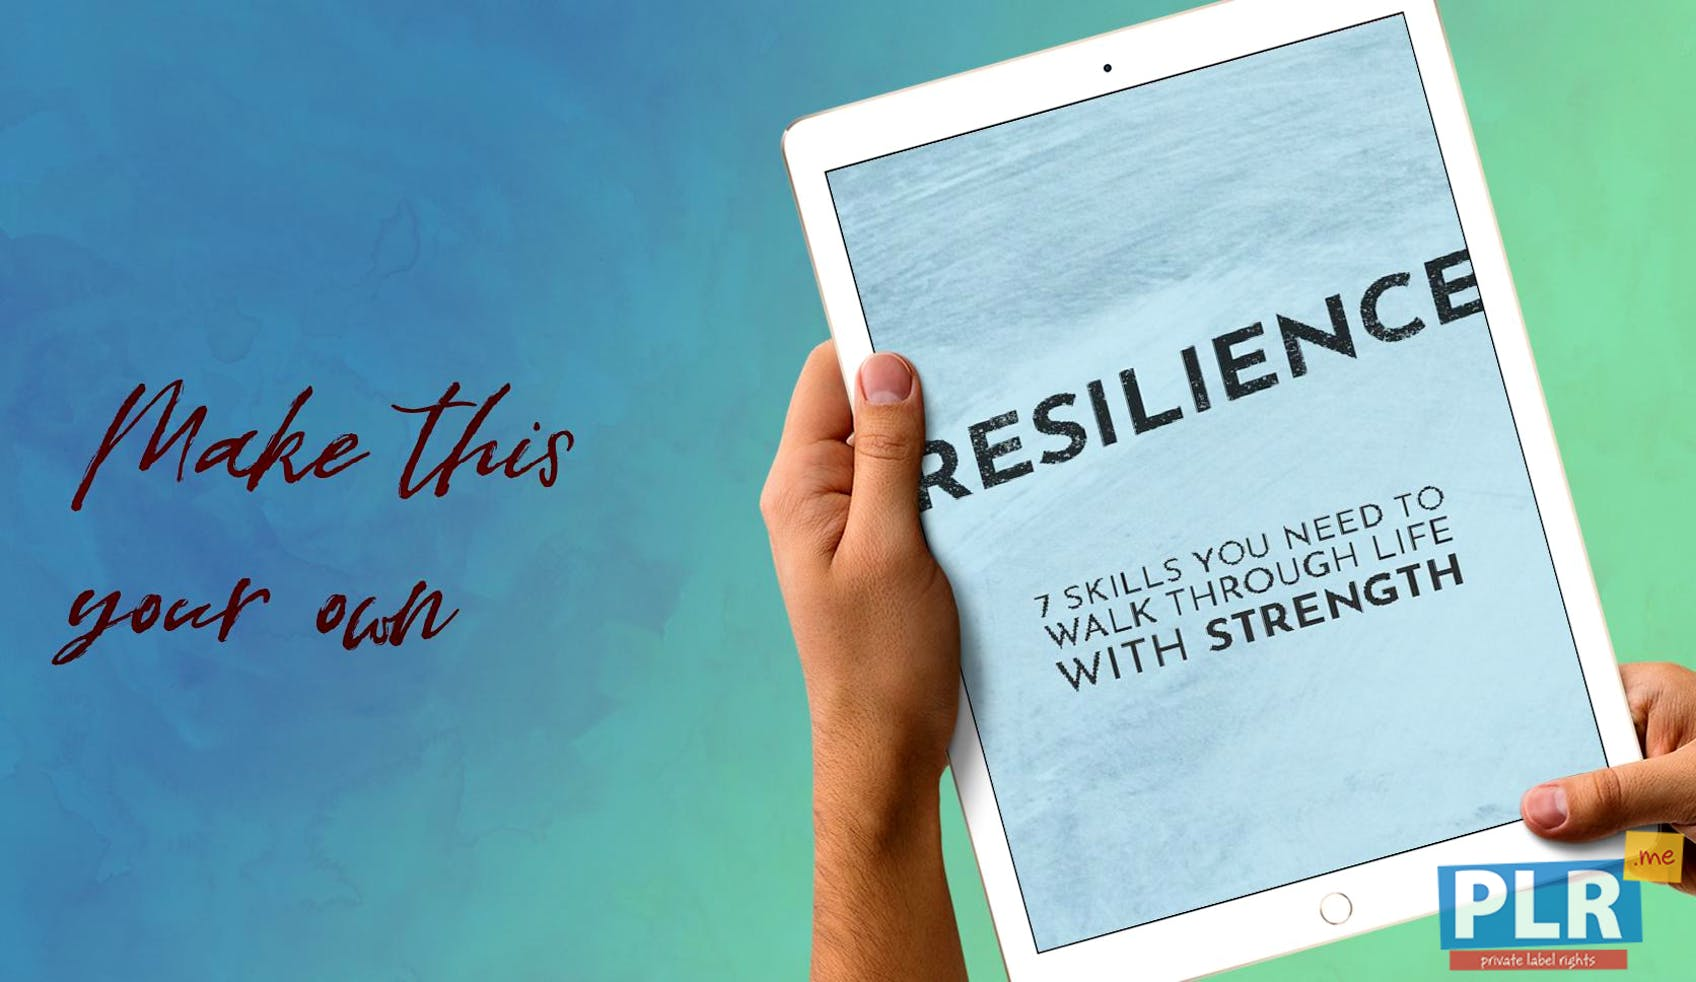 Resilience 7 Skills You Need To Walk Through Life With Strength